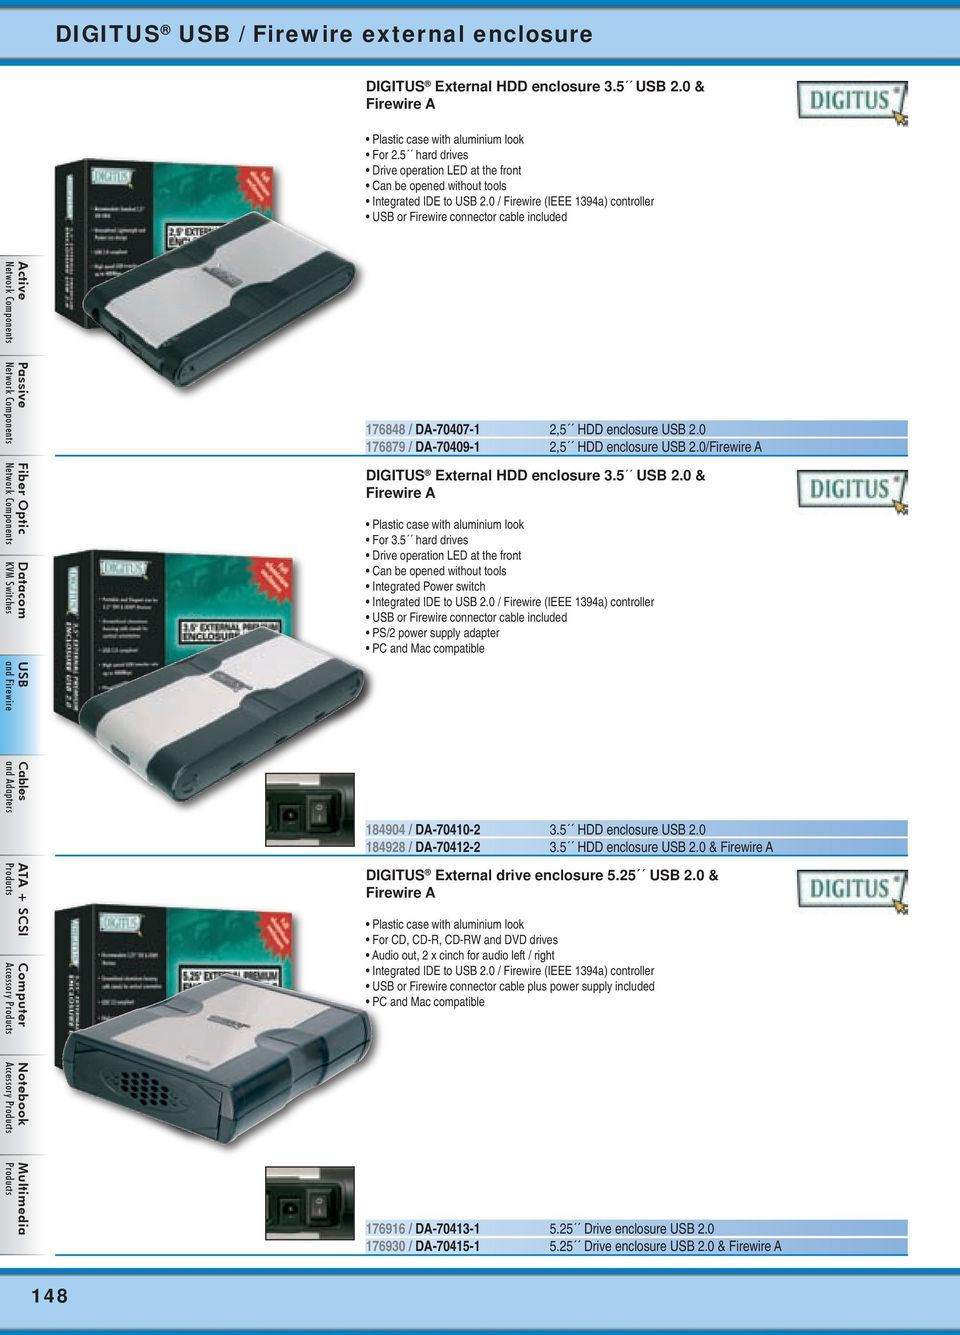 Usb And Firewire Digitus Hubs From Page 142 Card Notebook Ide Interface Cdrom To External Drive Circuit Boardred 0 Ieee 1394a Controller Or Connector Cable Included 176848 Da